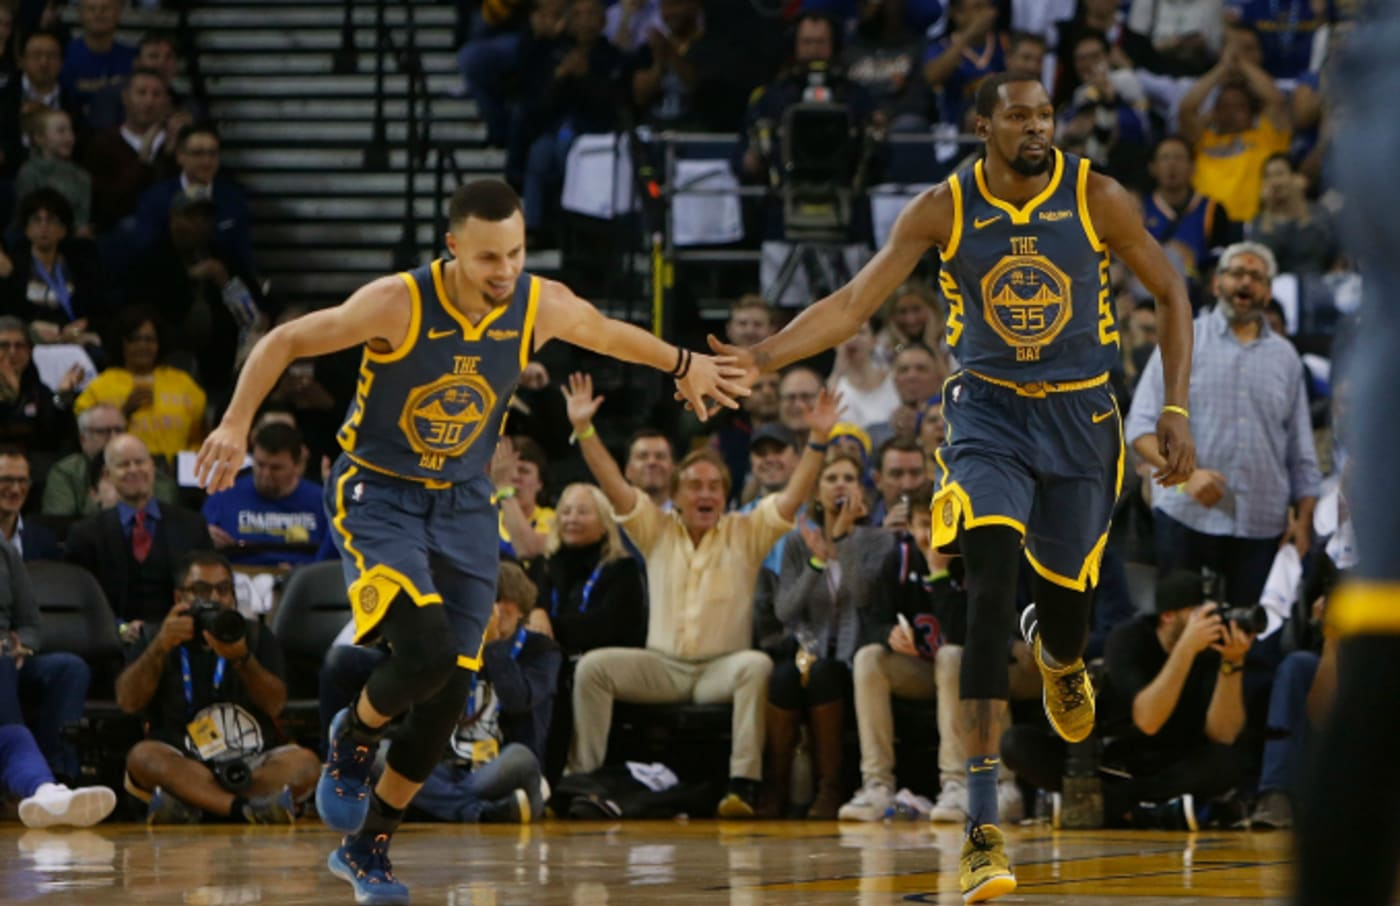 Stephen Curry #30 and Kevin Durant #35 of the Golden State Warriors celebrate a basket